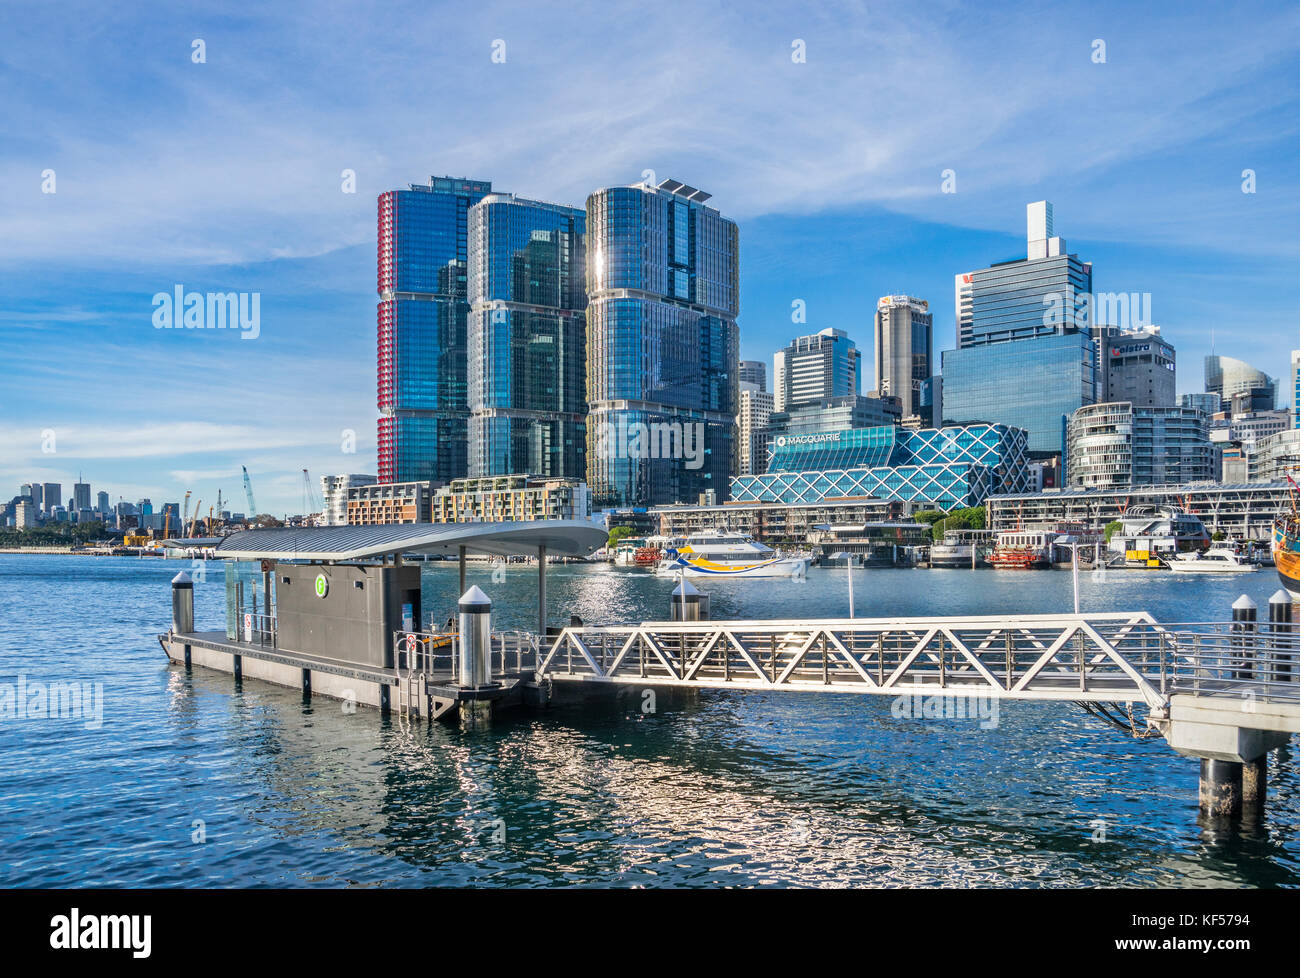 Australia, New South Wales; Sydney, view of Darling Harbour and the Barangaroo International Towers from Darling - Stock Image